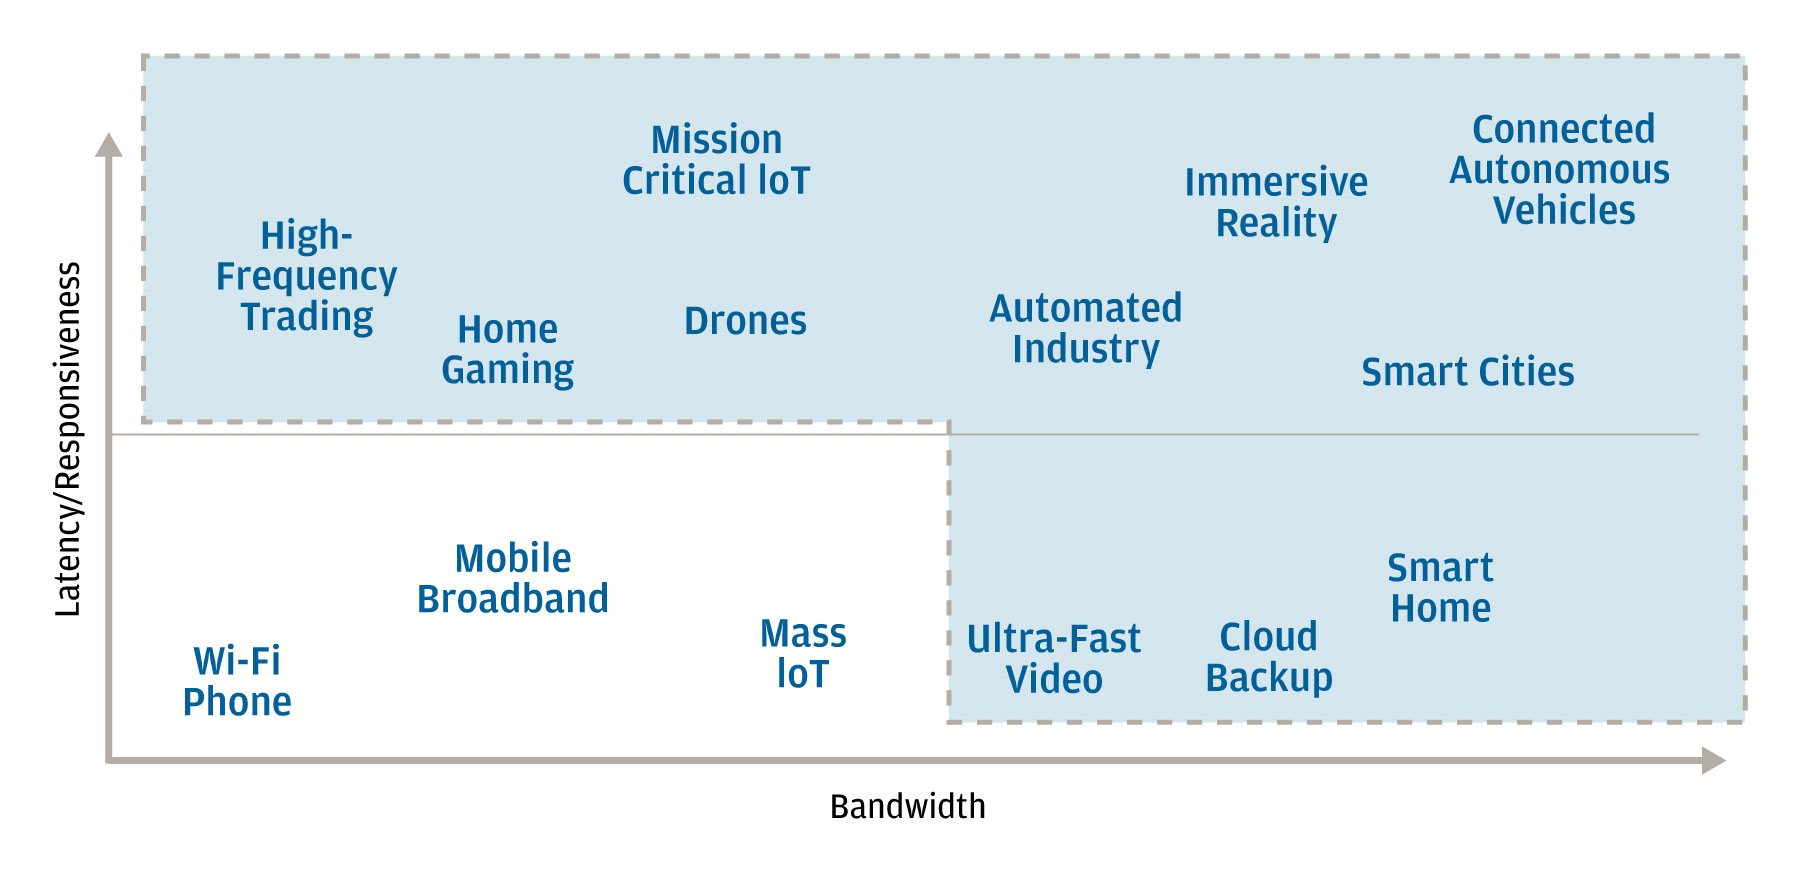 Table showing a range of applications, devices and other uses of high-speed data positioned according to their required bandwidth and degrees of latency and responsiveness.